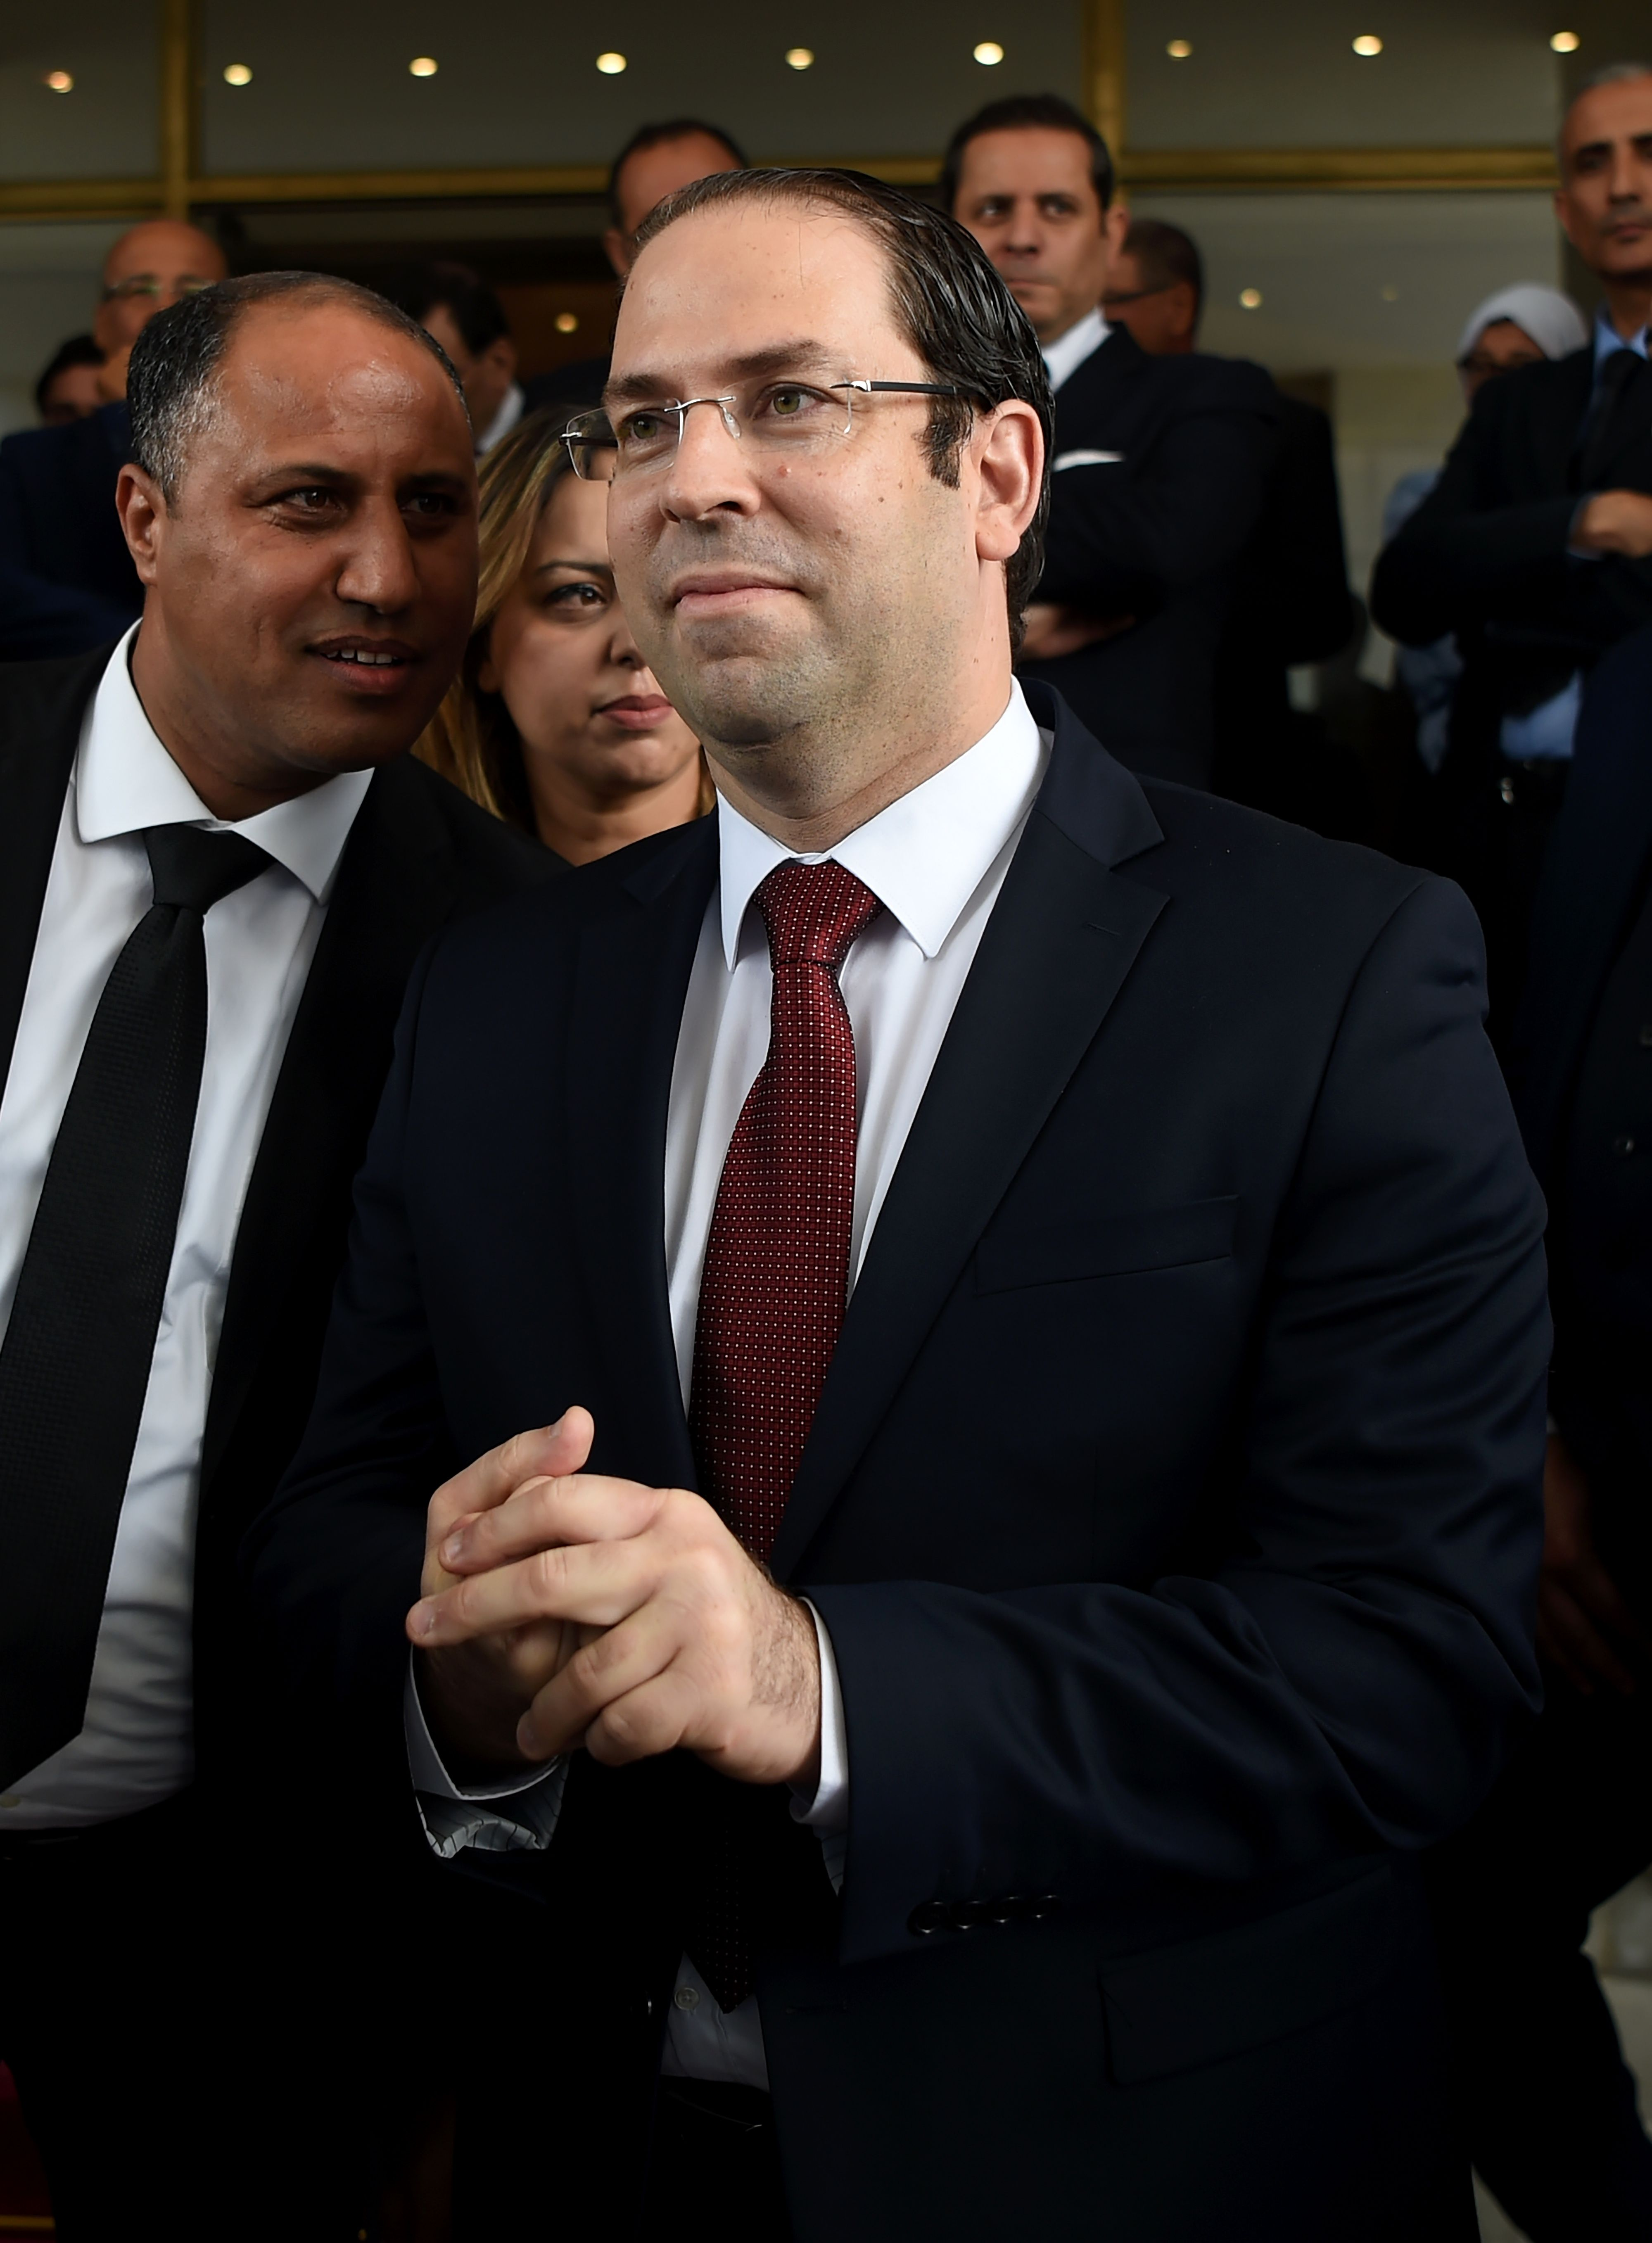 Tunisian Prime Minister Youssef Chahed attends a speech in Tunis on May 10, 2017